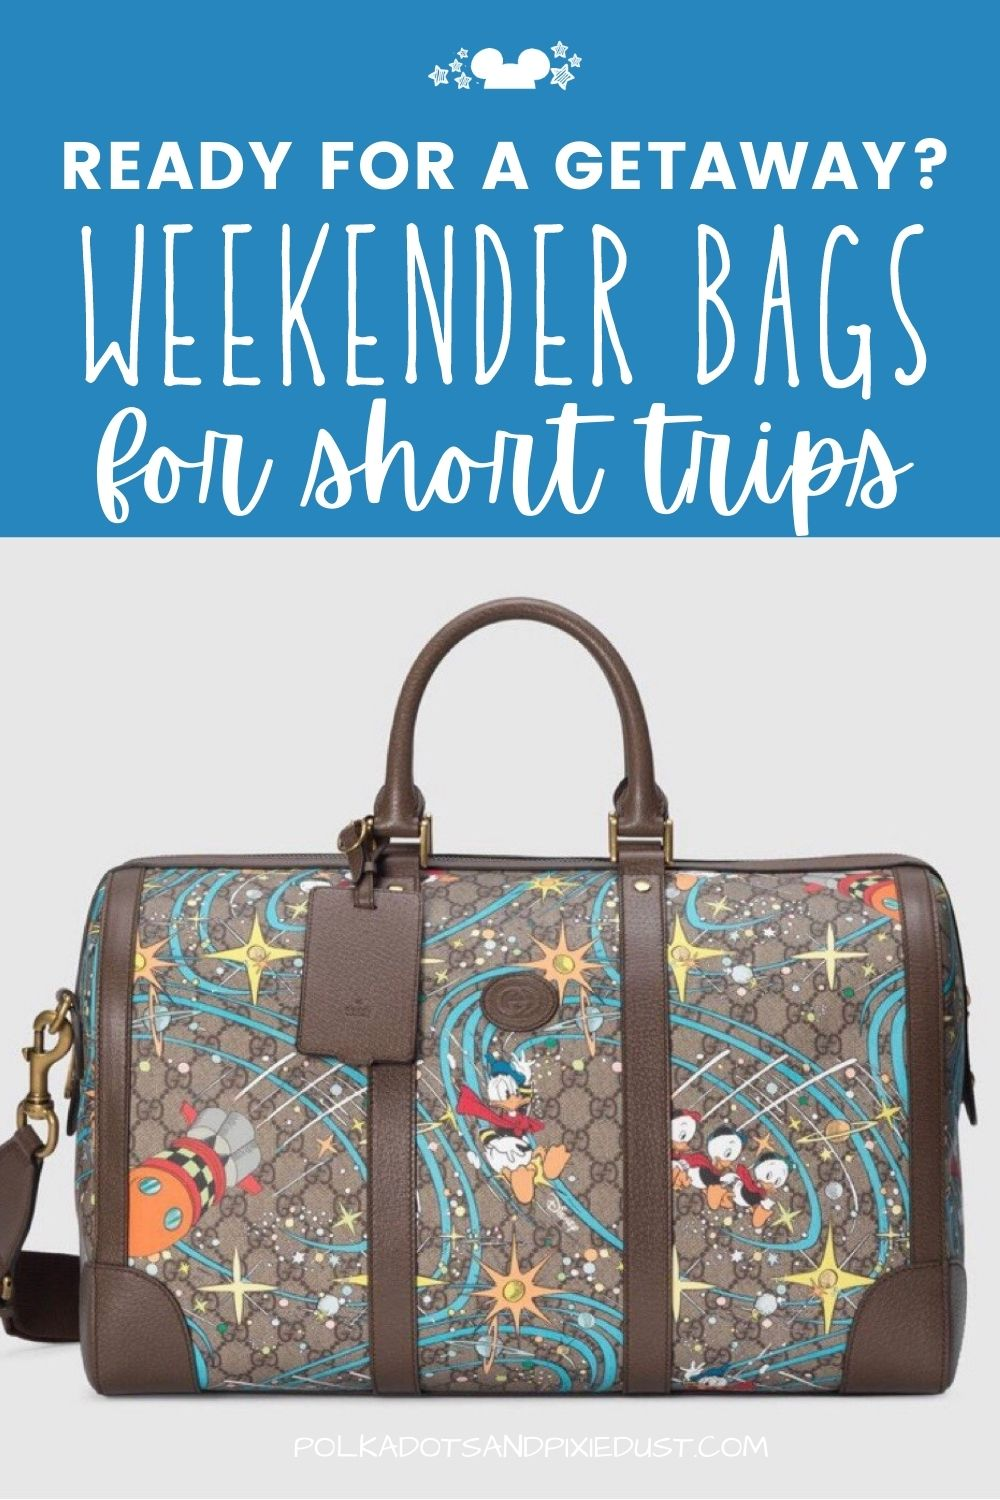 Weekender Bags for your Disney Vacation or Wizarding World Vacation. #disneyvacation #